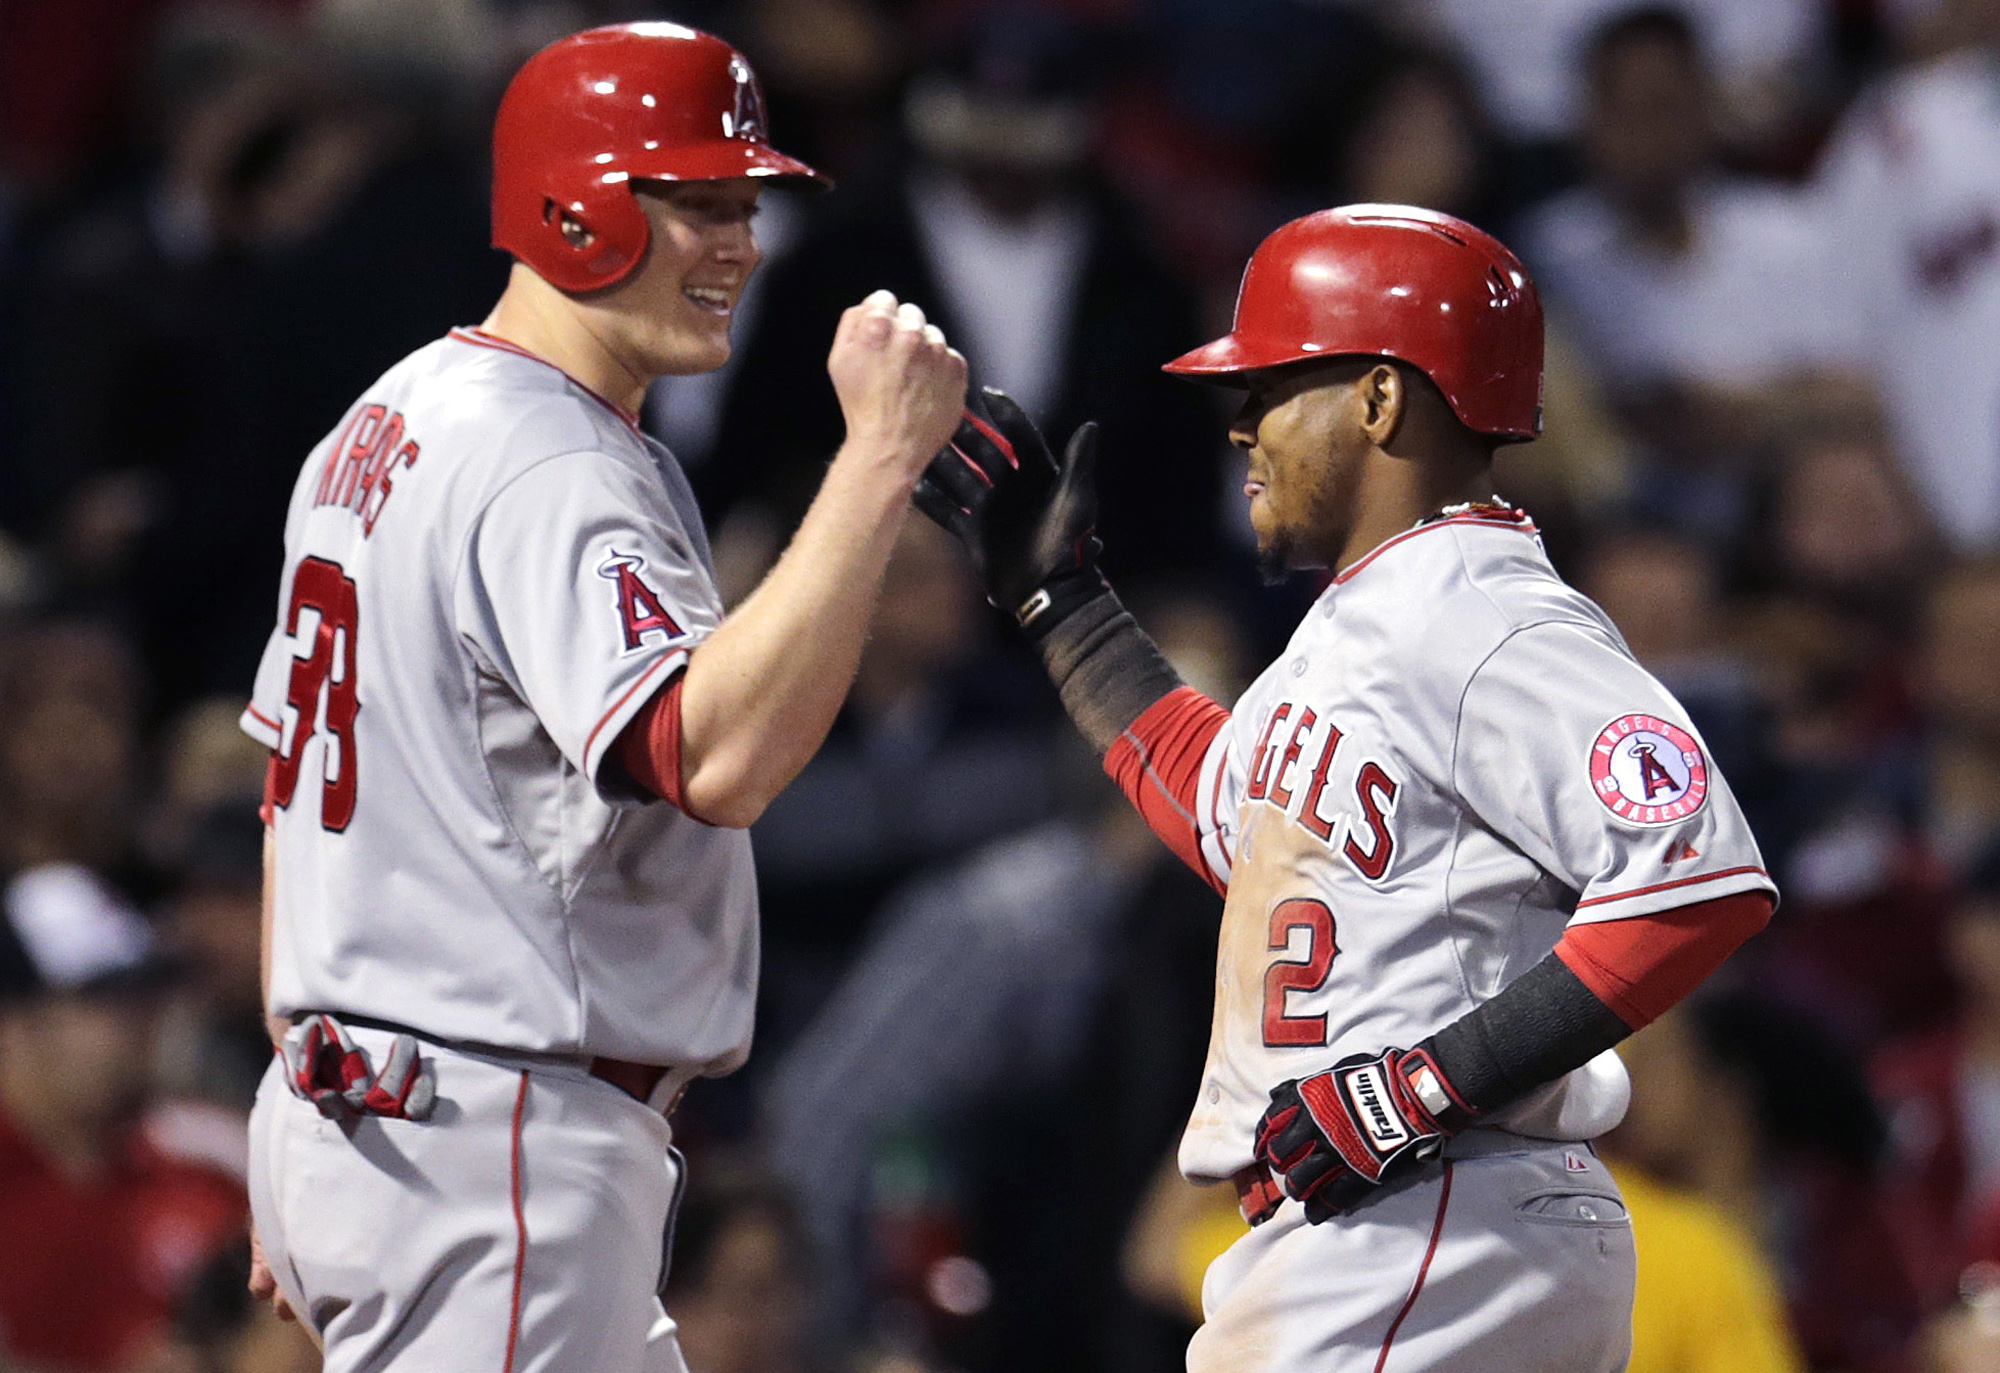 Los Angeles Angels' Erick Aybar is congratulated by teammate Marc Krauss after his two-run home run in the fifth inning of a baseball game against the Boston Red Sox at Fenway Park in Boston, Friday, May 22, 2015.  The Angels scored nine runs in the fifth